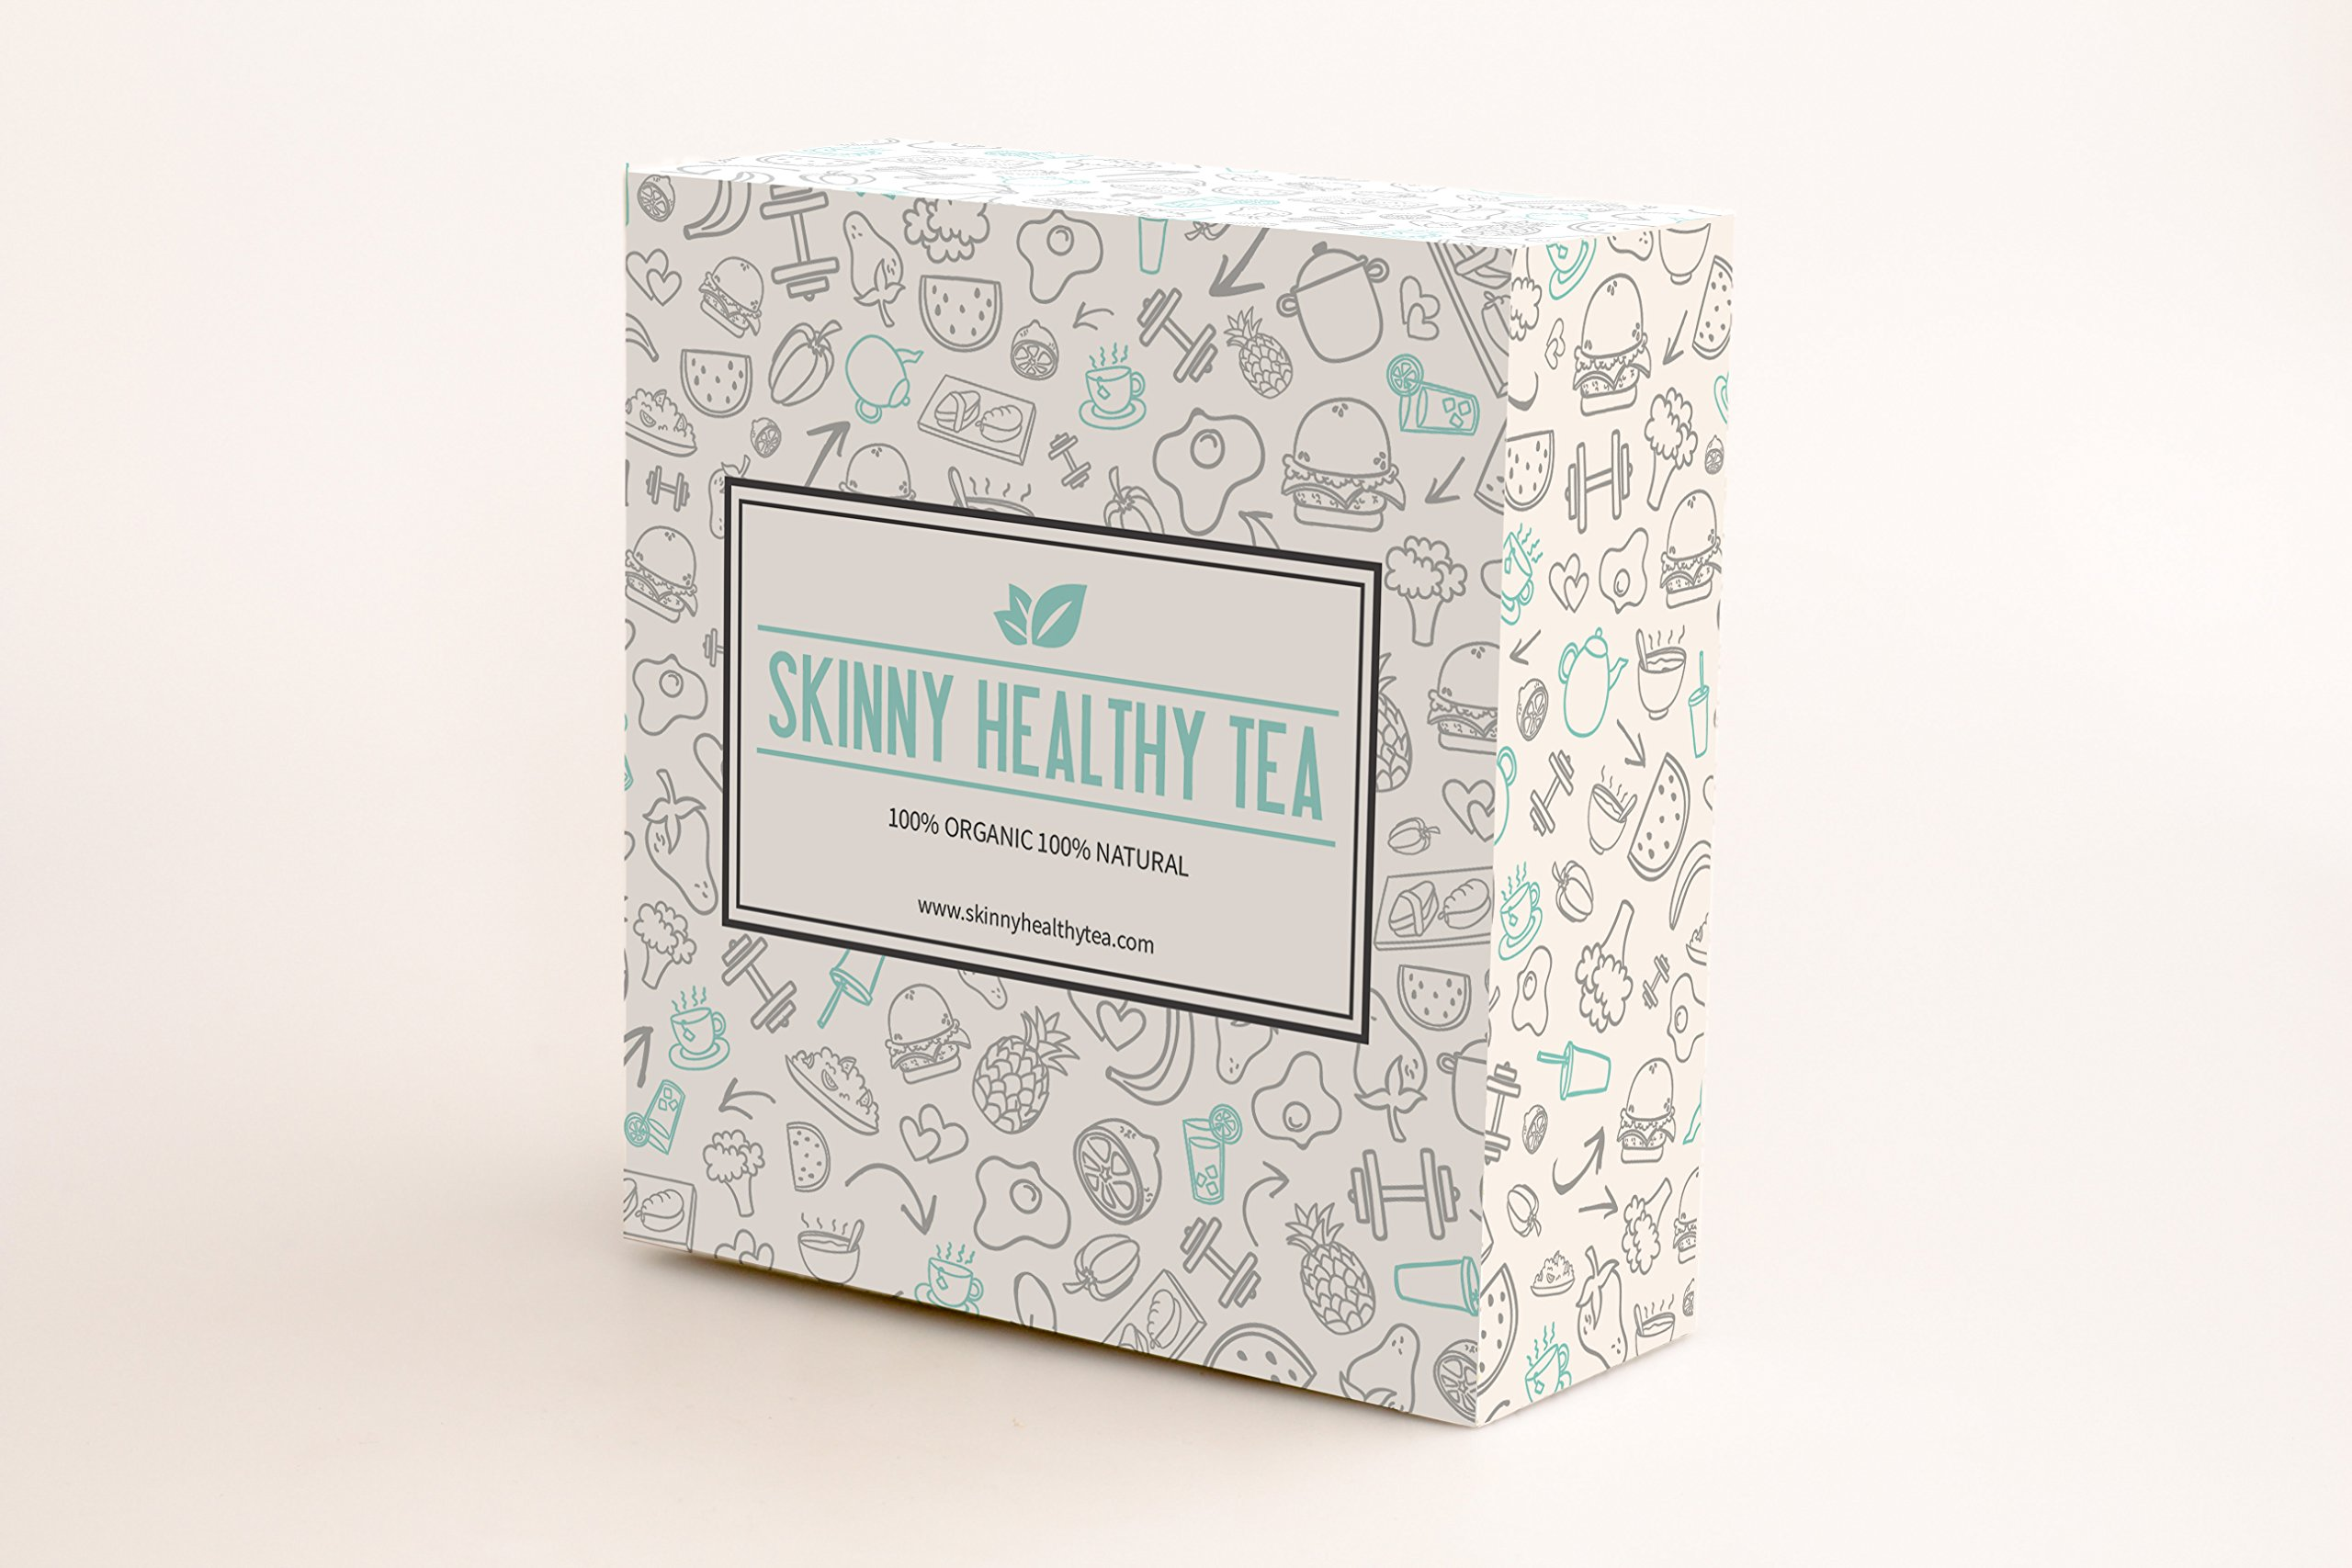 Skinny Healthy Tea by eatgood